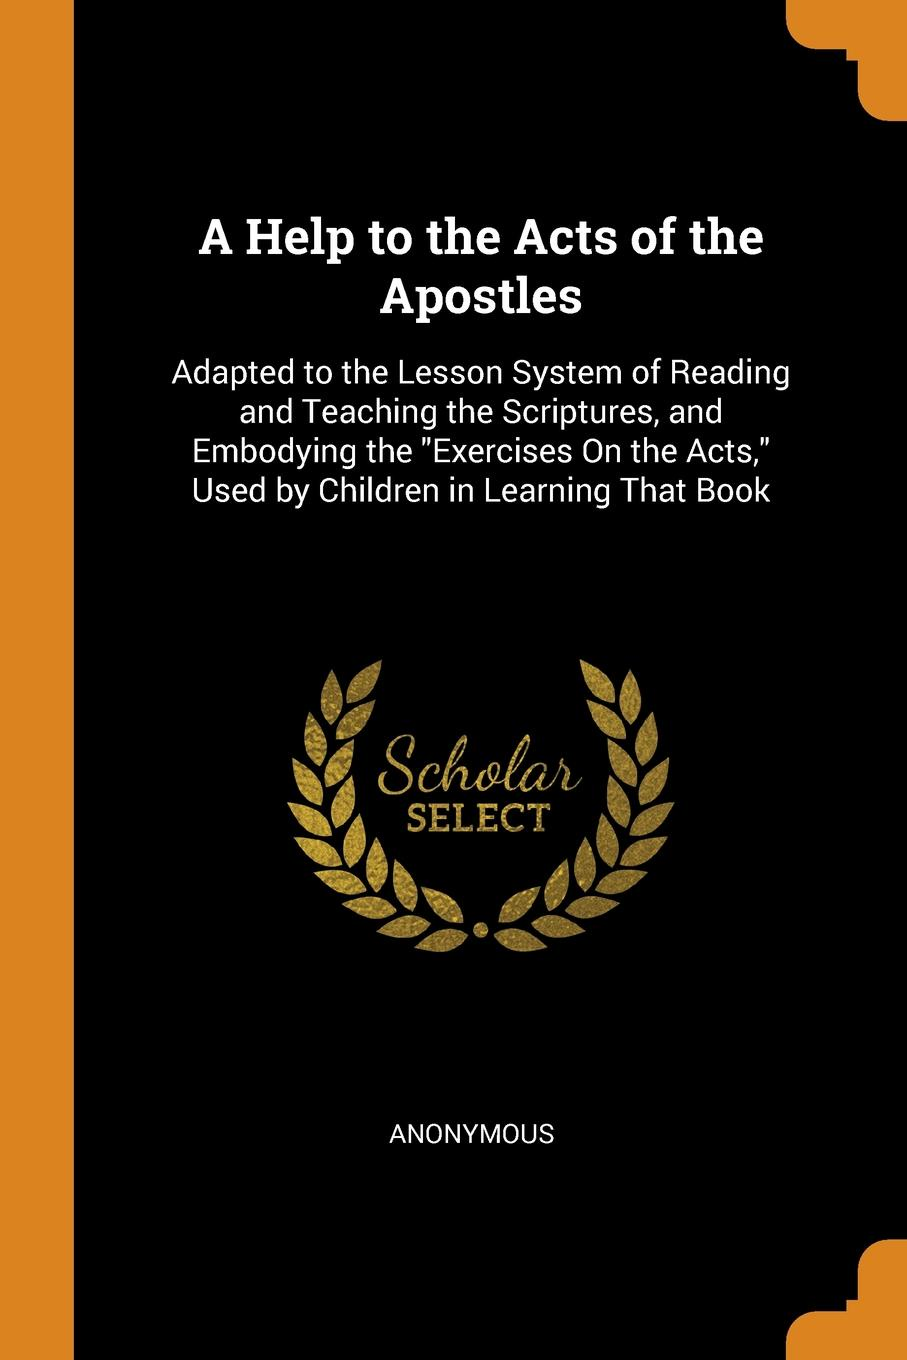 A-Help-to-the-Acts-of-the-Apostles-Adapted-to-the-Lesson-System-of-Reading-and-Teaching-the-Scriptures-and-Embodying-the-Exercises-On-the-Acts-Used-by